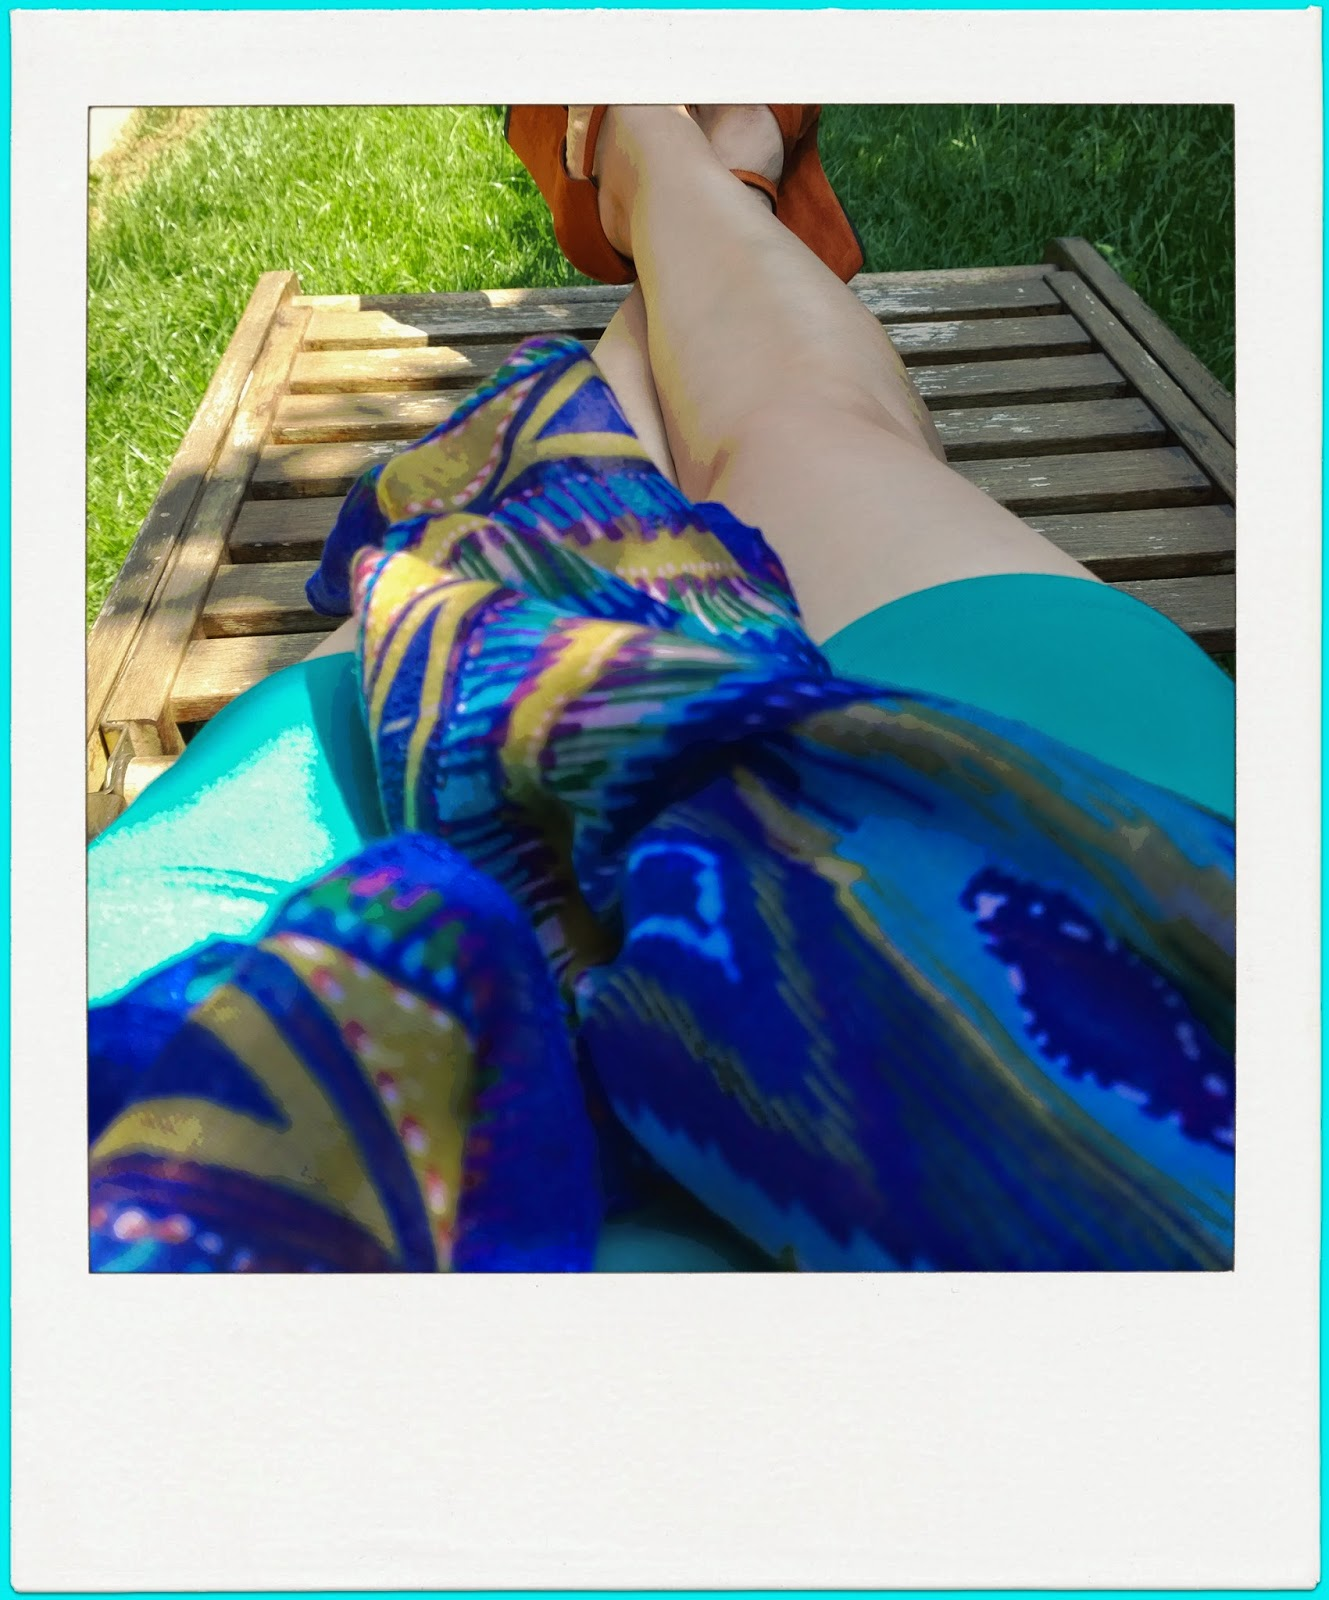 Funky Jungle lounging, legs and shoes